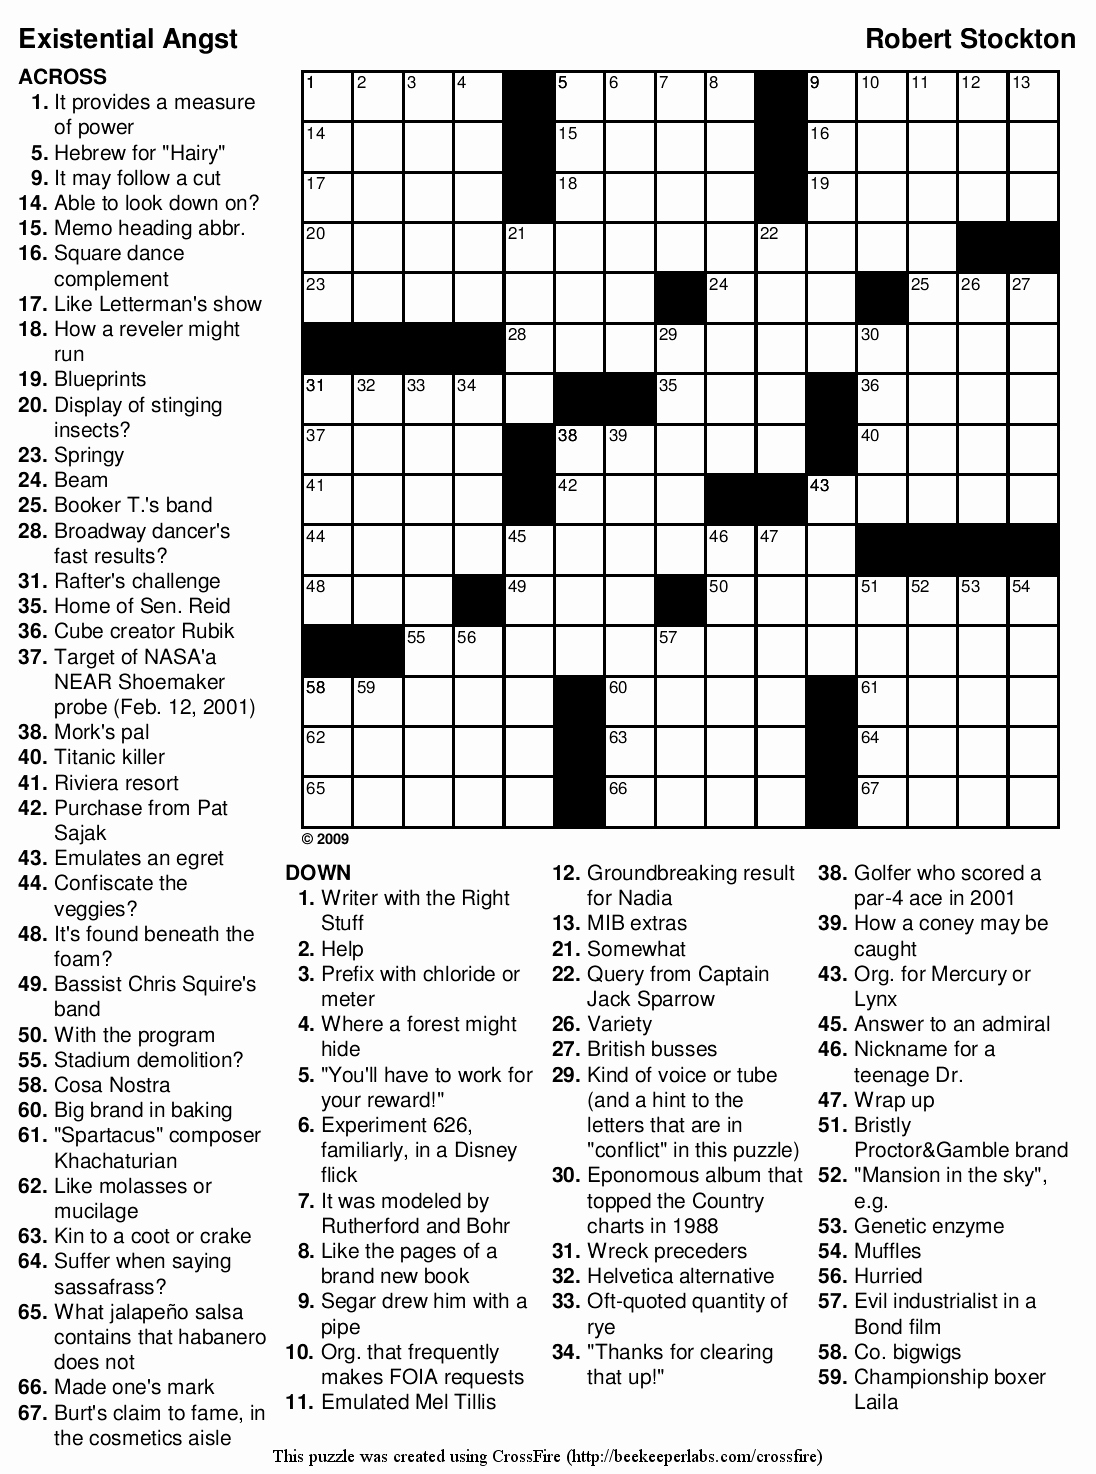 Hard Crossword Puzzles Printable And 8 Best Of Printable Difficult - Printable Crossword Puzzles Difficult